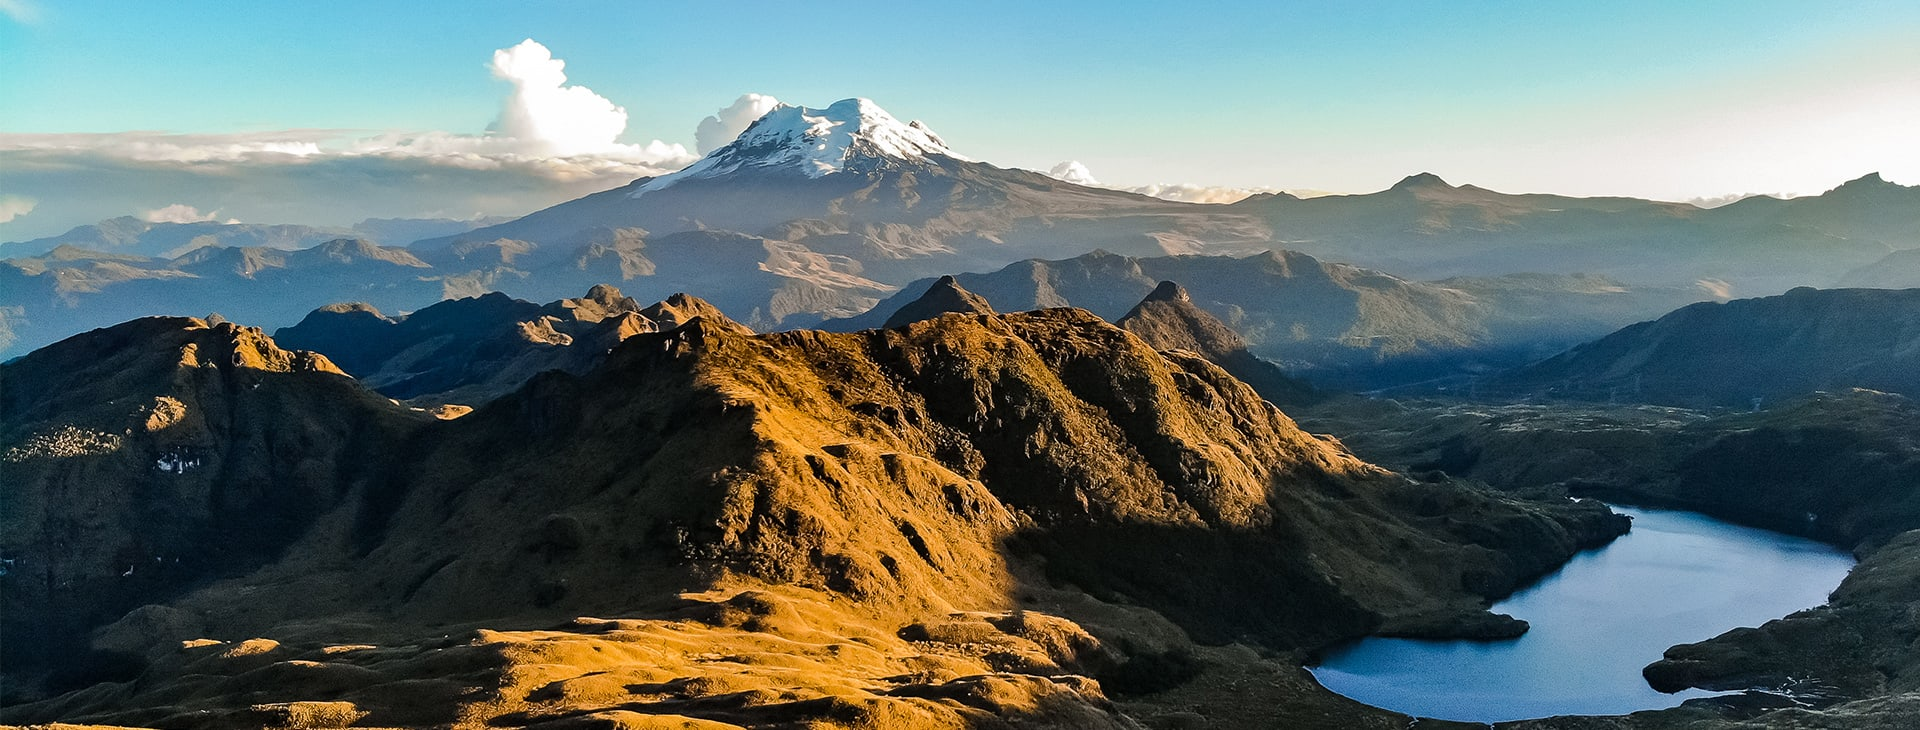 Andean Scenery Pappalacta